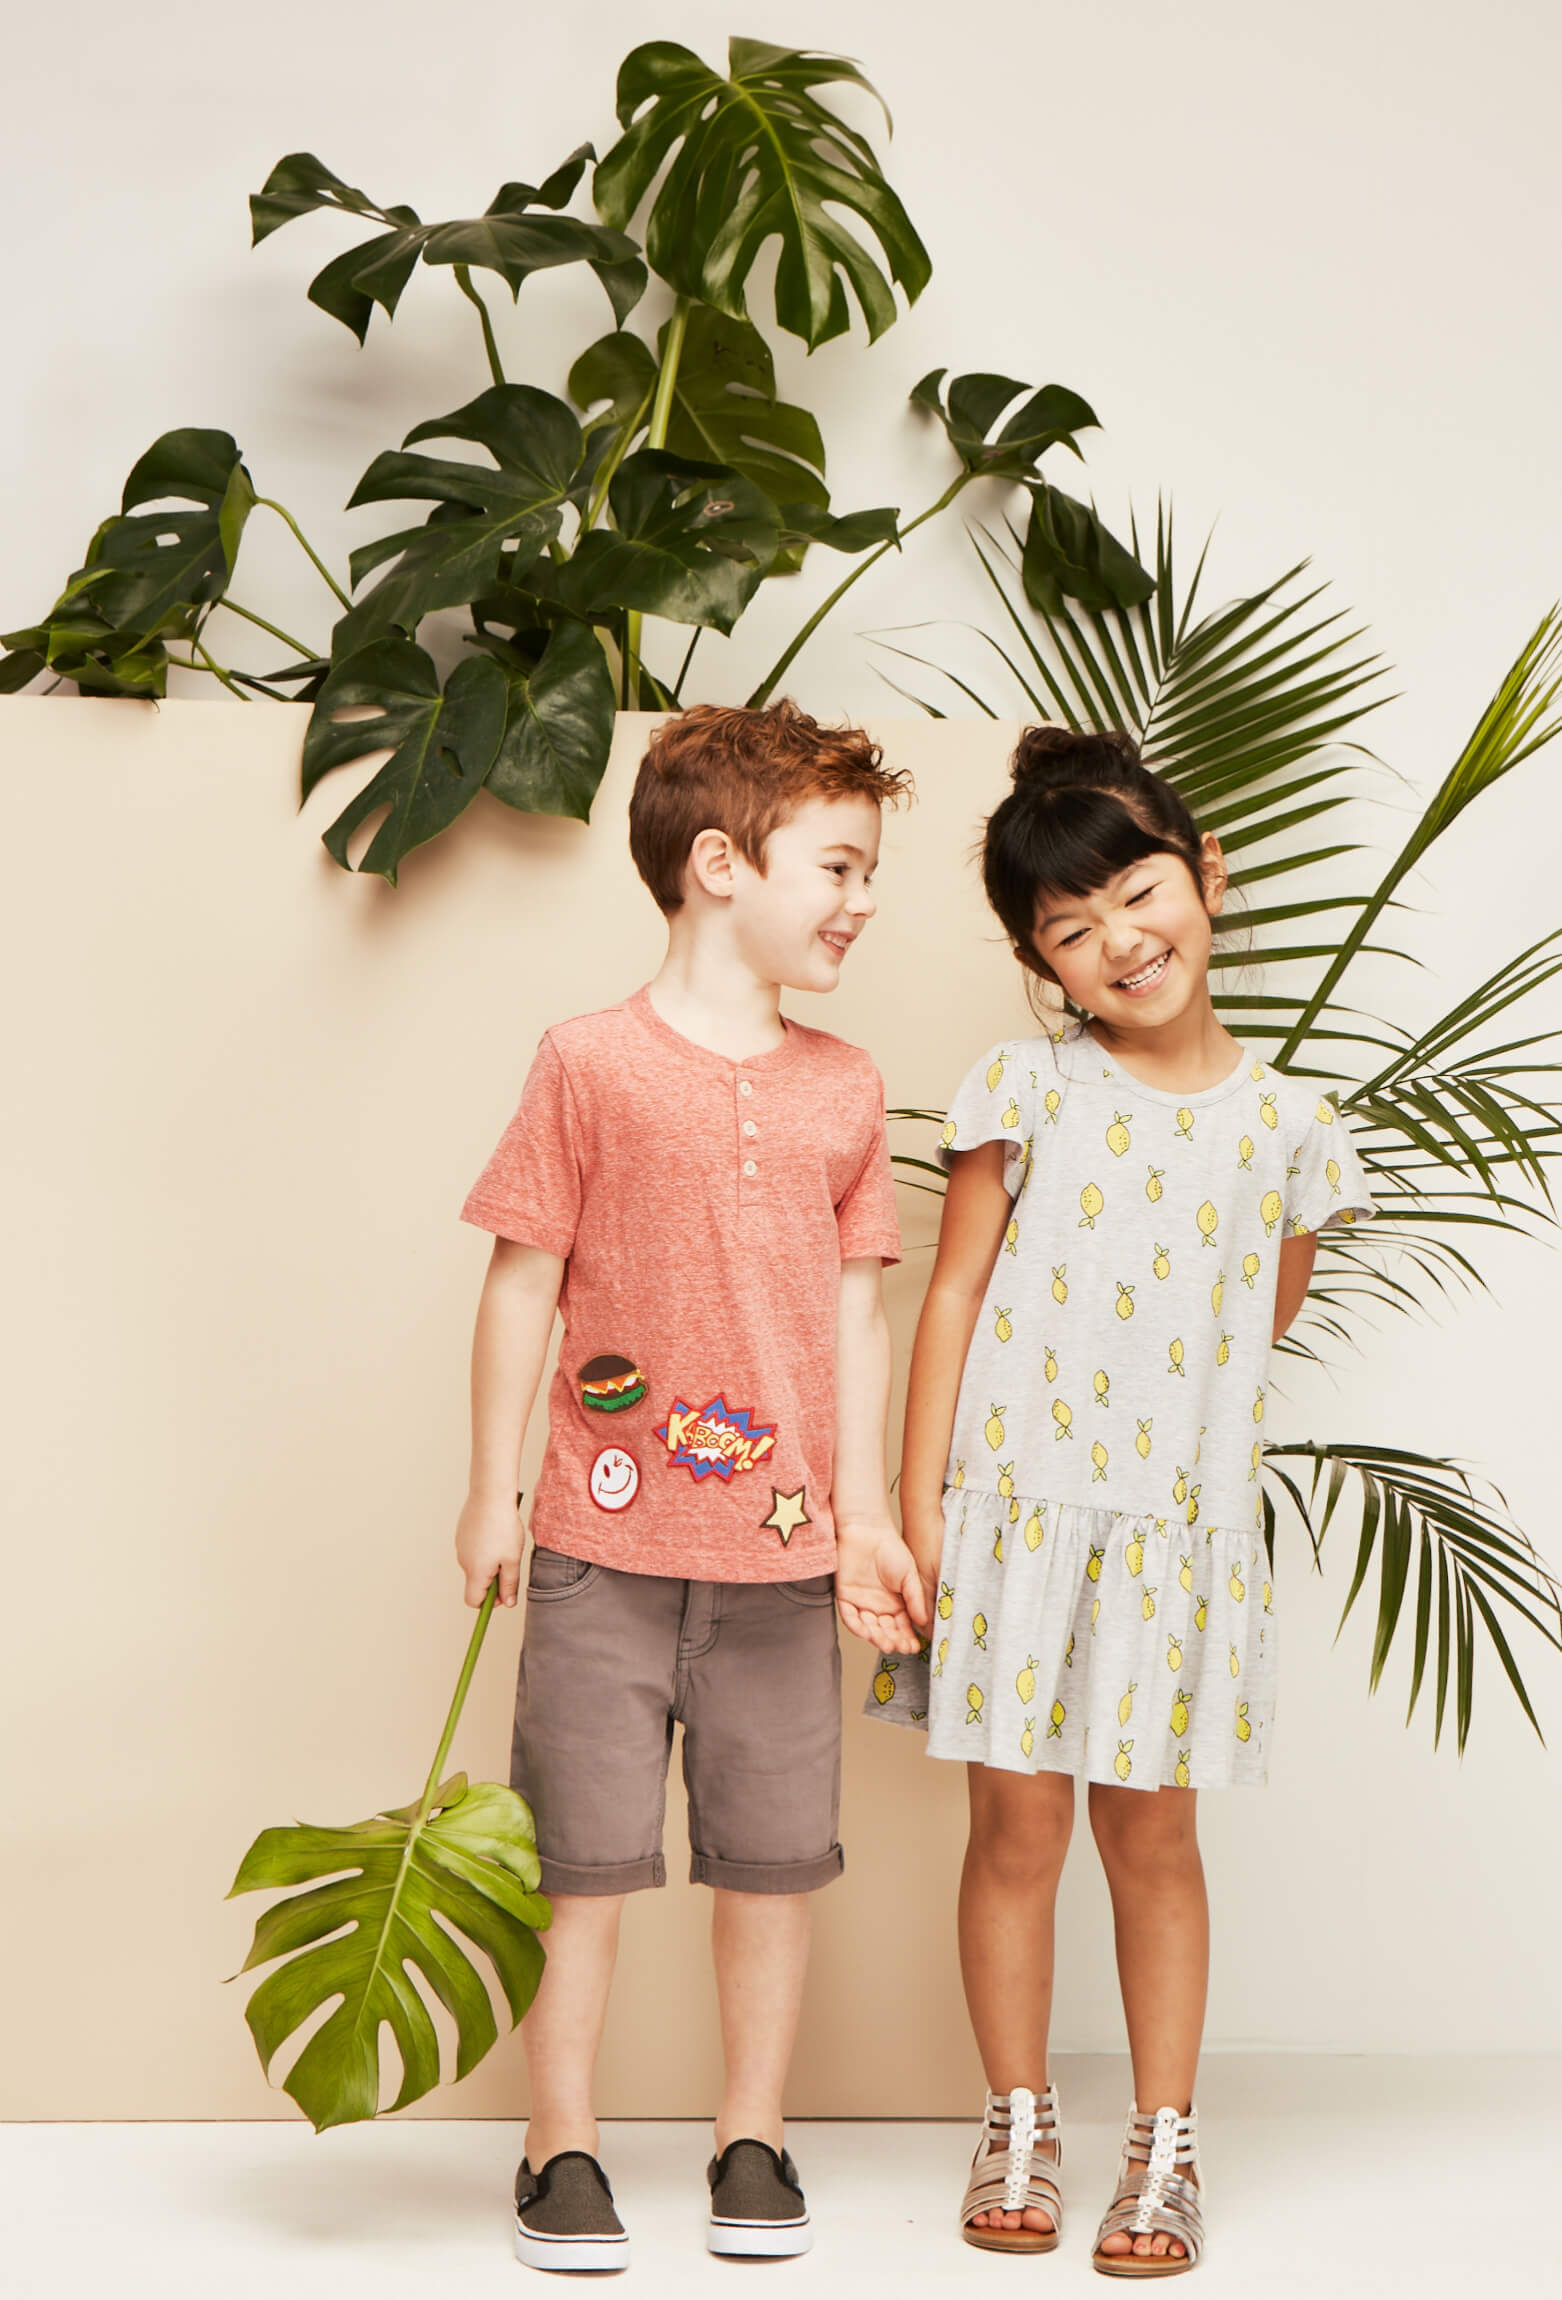 Child Fashion Photography | Nordstrom Kids | VIKA POBEDA